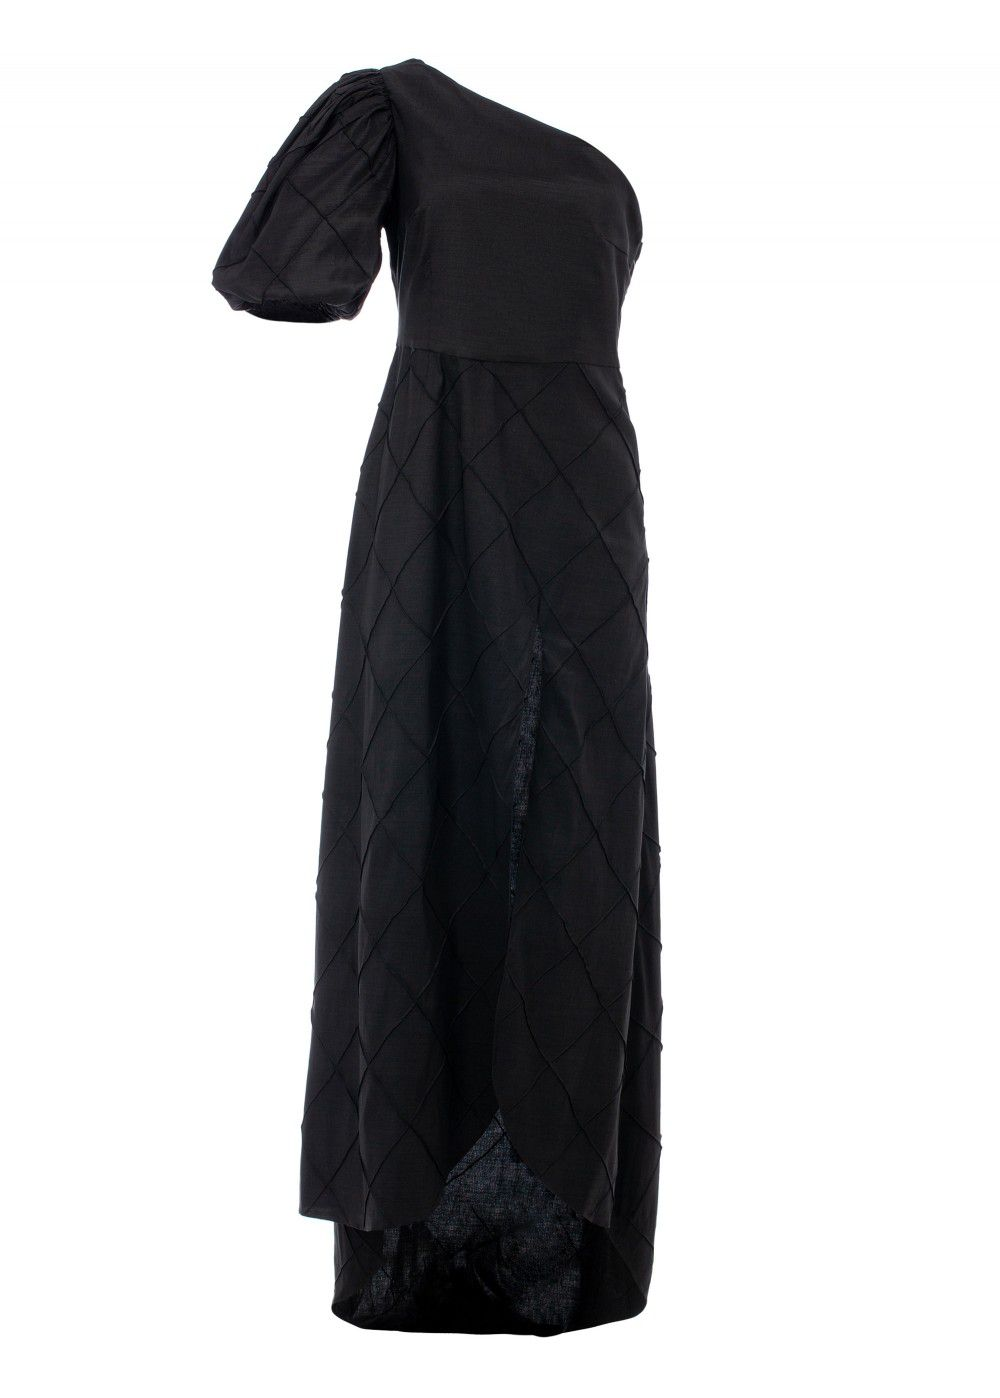 Masterpeace Black Cut Dress